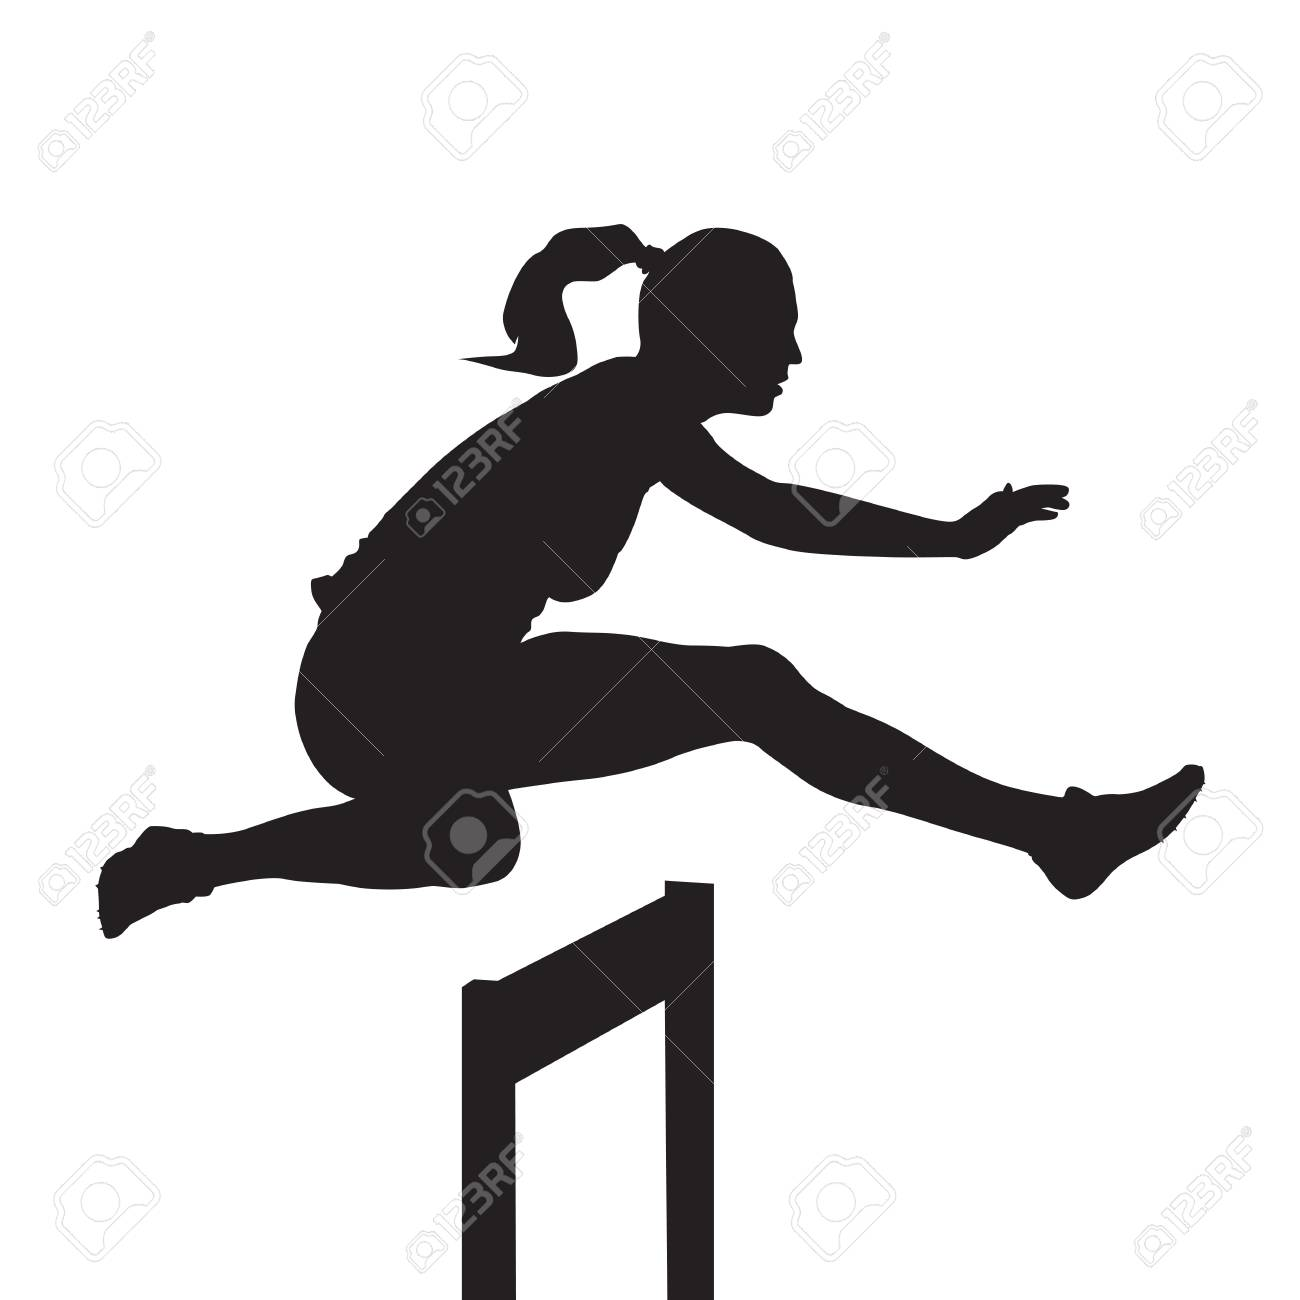 Woman jumping and running over hurdles, hurdle race, vector silhouette - 79575388